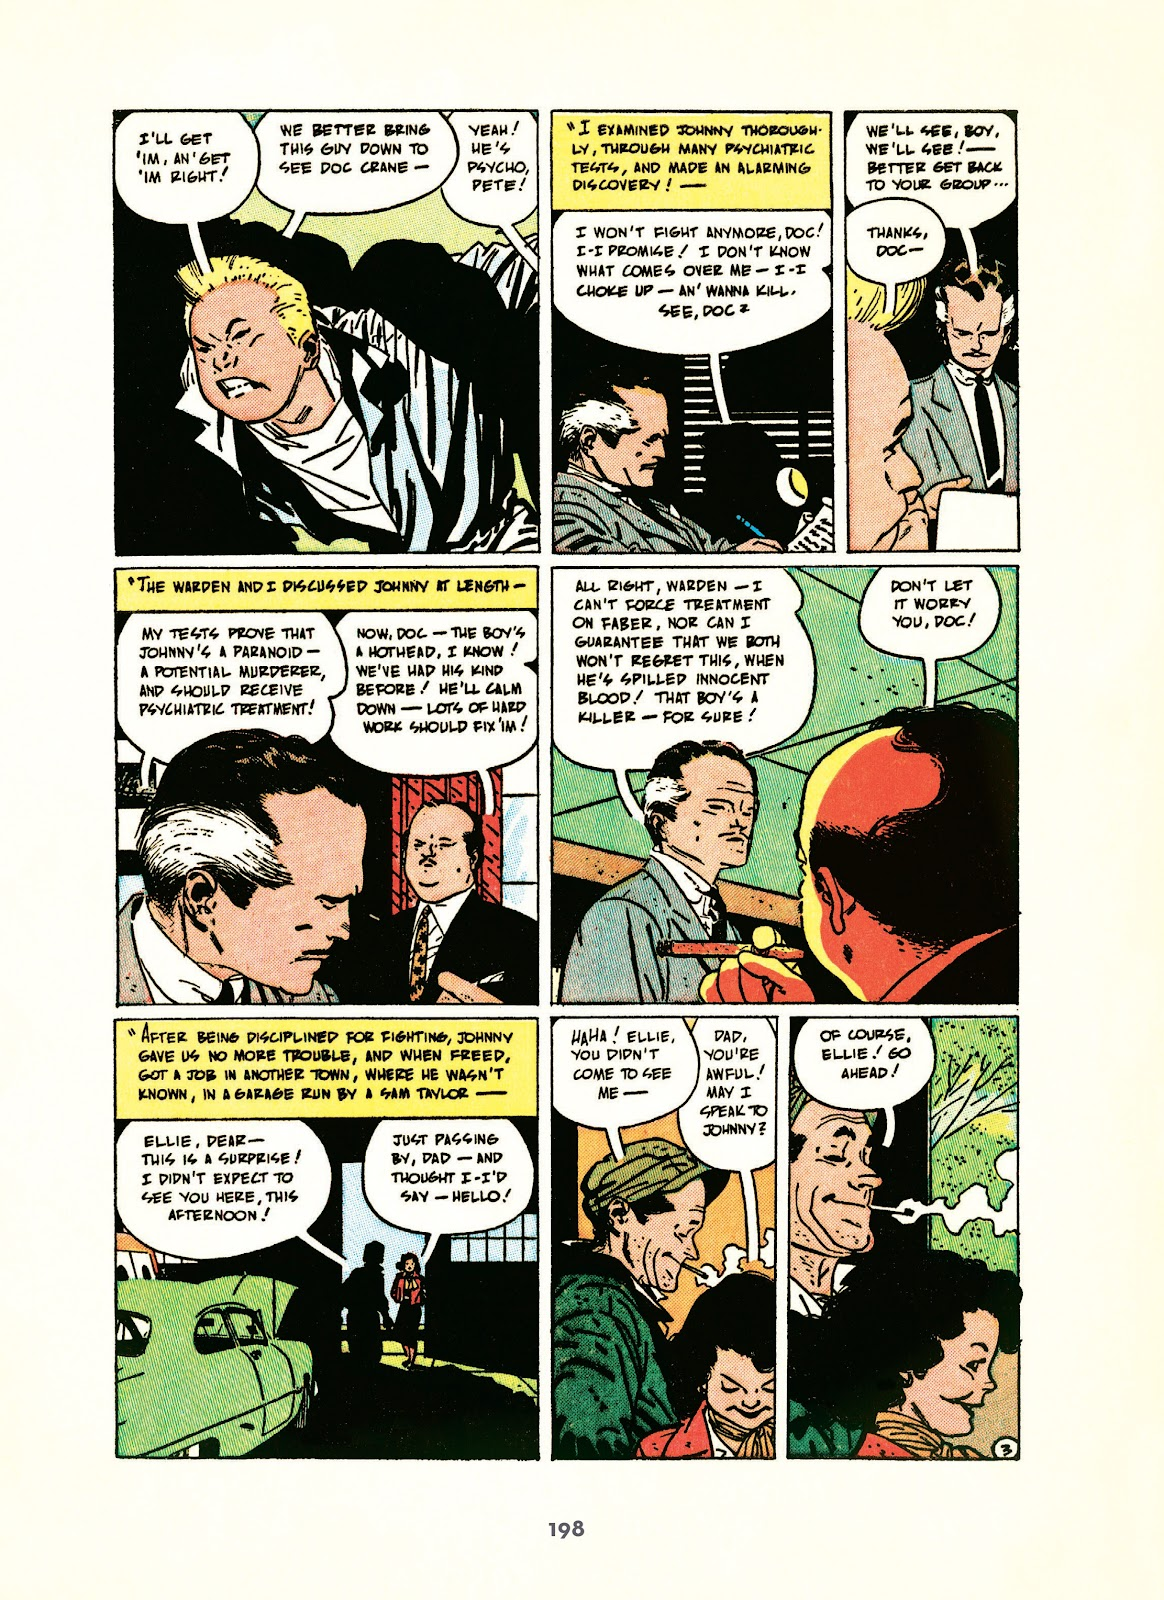 Read online Setting the Standard: Comics by Alex Toth 1952-1954 comic -  Issue # TPB (Part 2) - 99